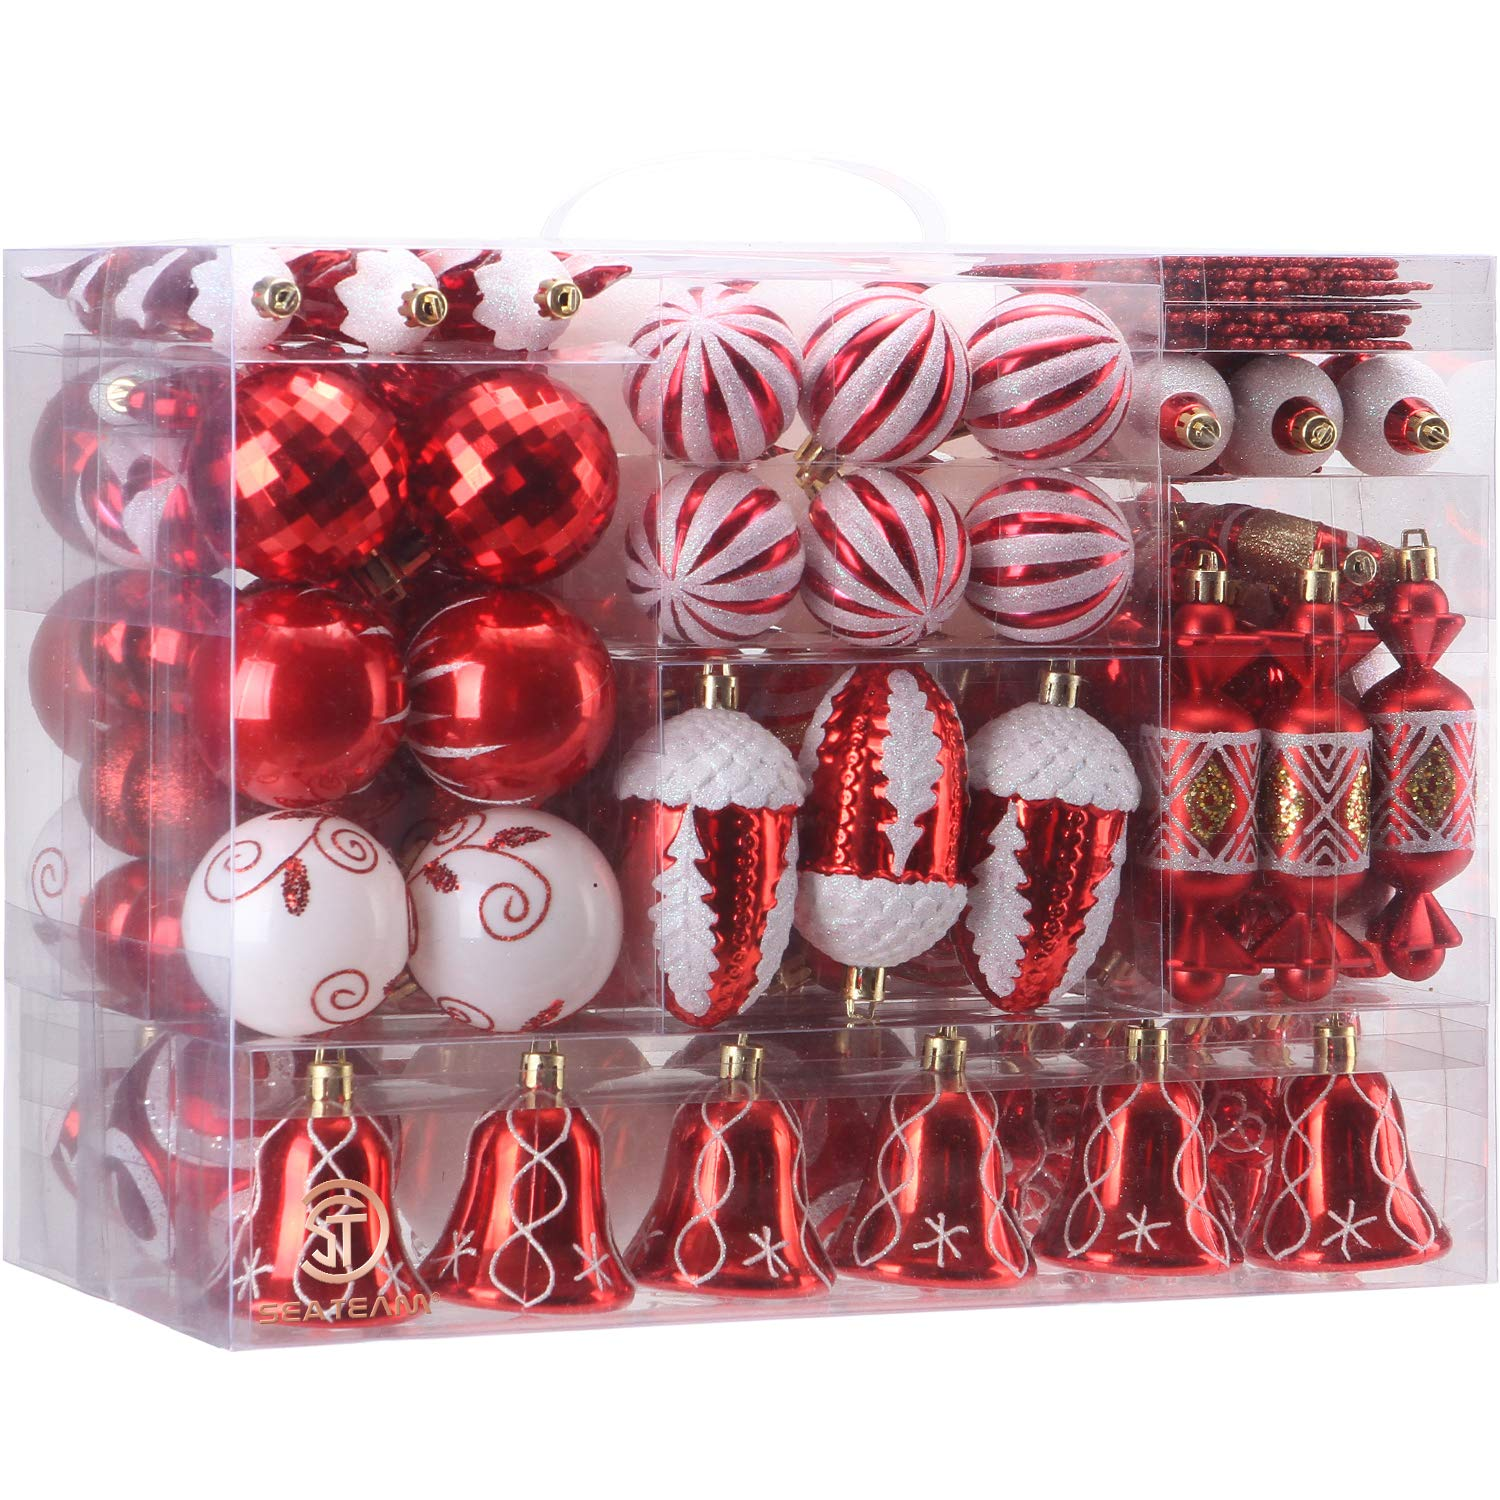 Sea Team 155-Pack Assorted Shatterproof Christmas Ball Ornaments Set Decorative Baubles Pendants with Reusable Hand-held Gift Package for Xmas Tree (Red)